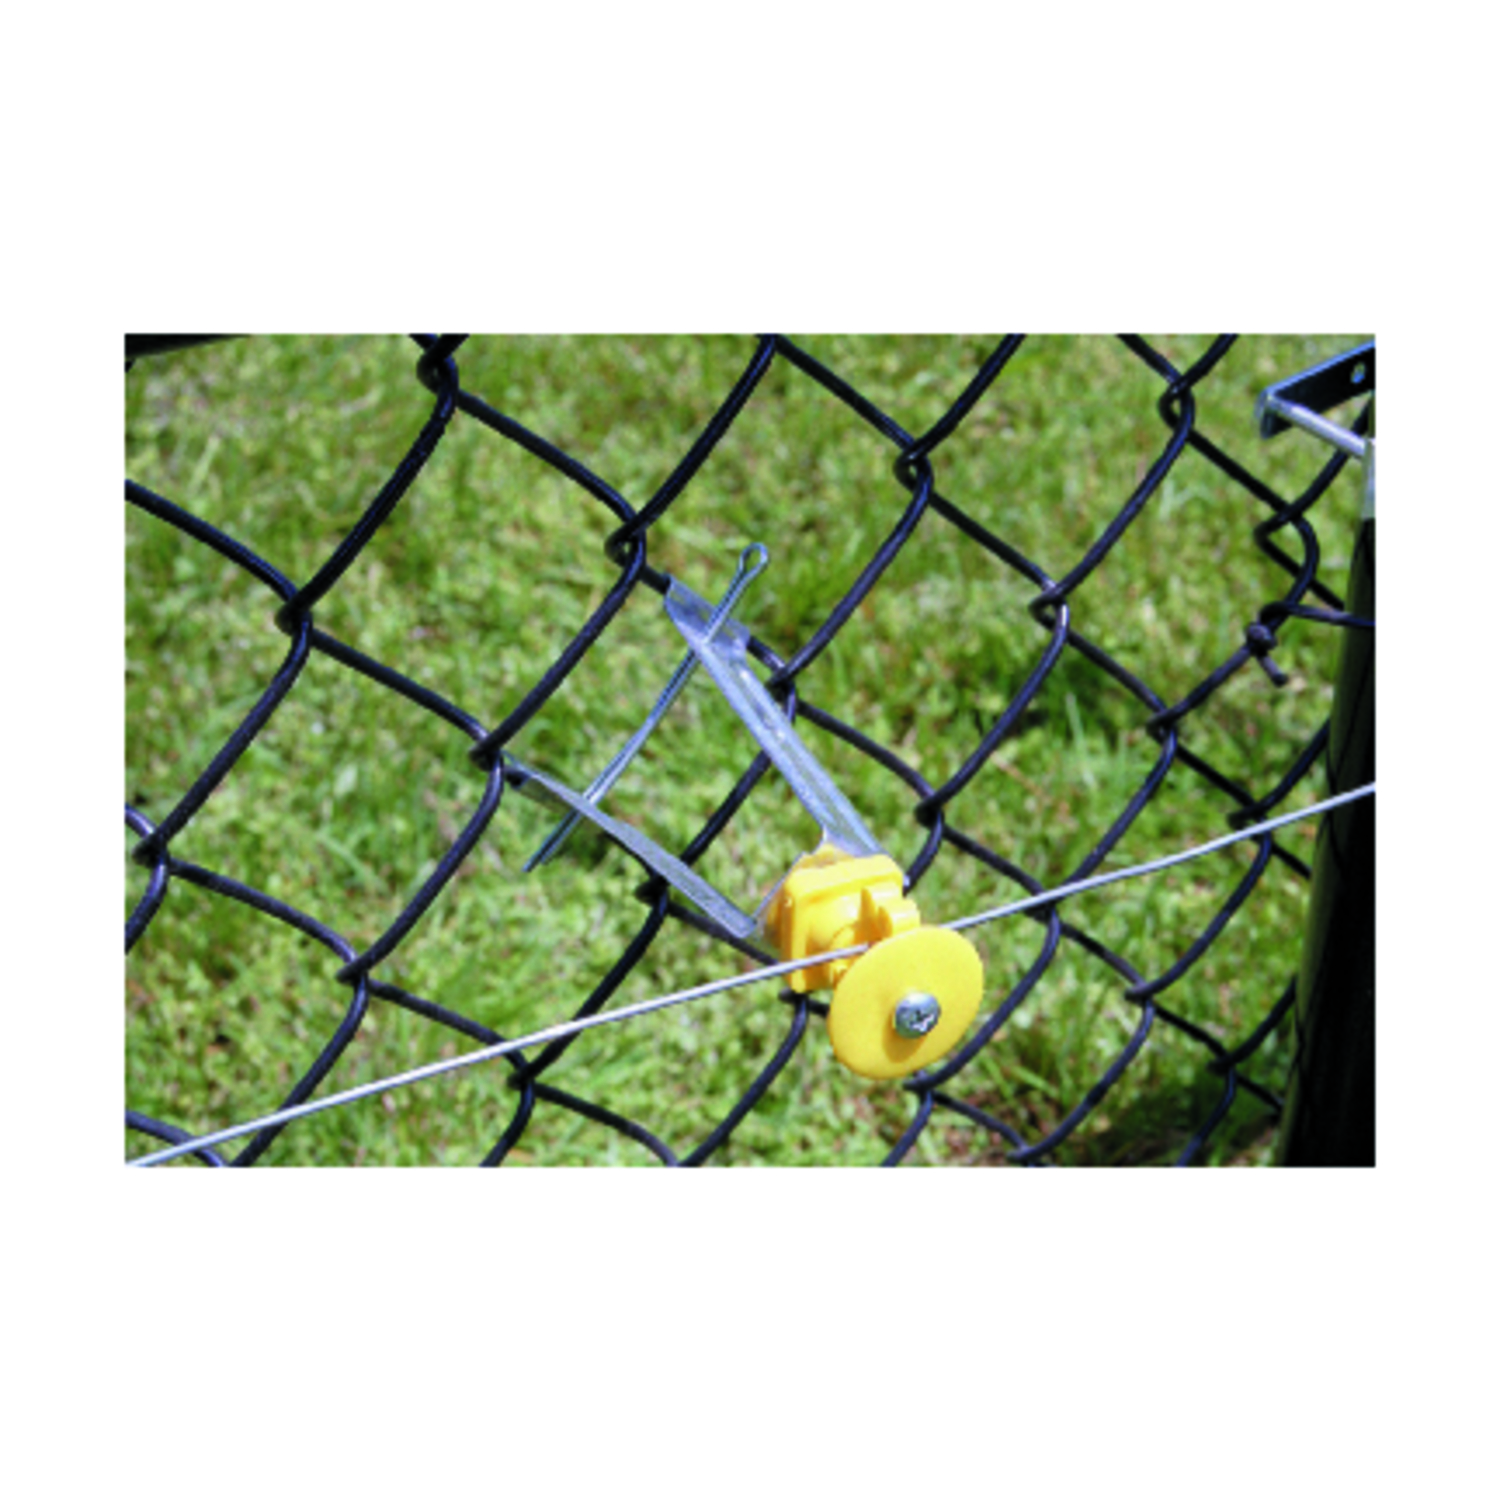 Fi Shock Electric Chain Link Fence Insulator